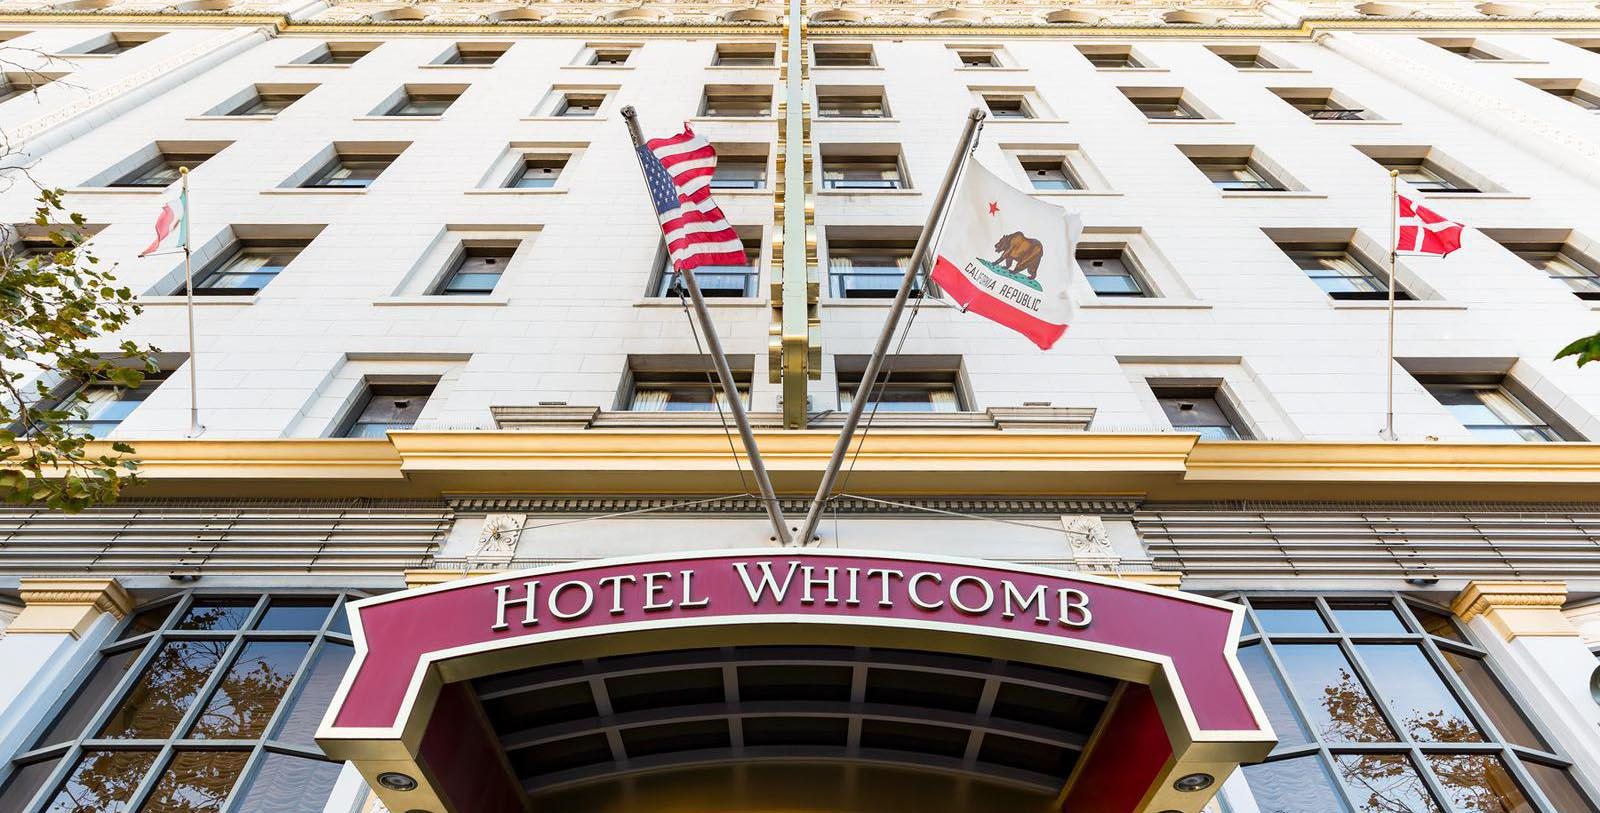 Image of Hotel Exterior, Hotel Whitcomb in San Francisco, California, 1916, Member of Historic Hotels of America, Overview